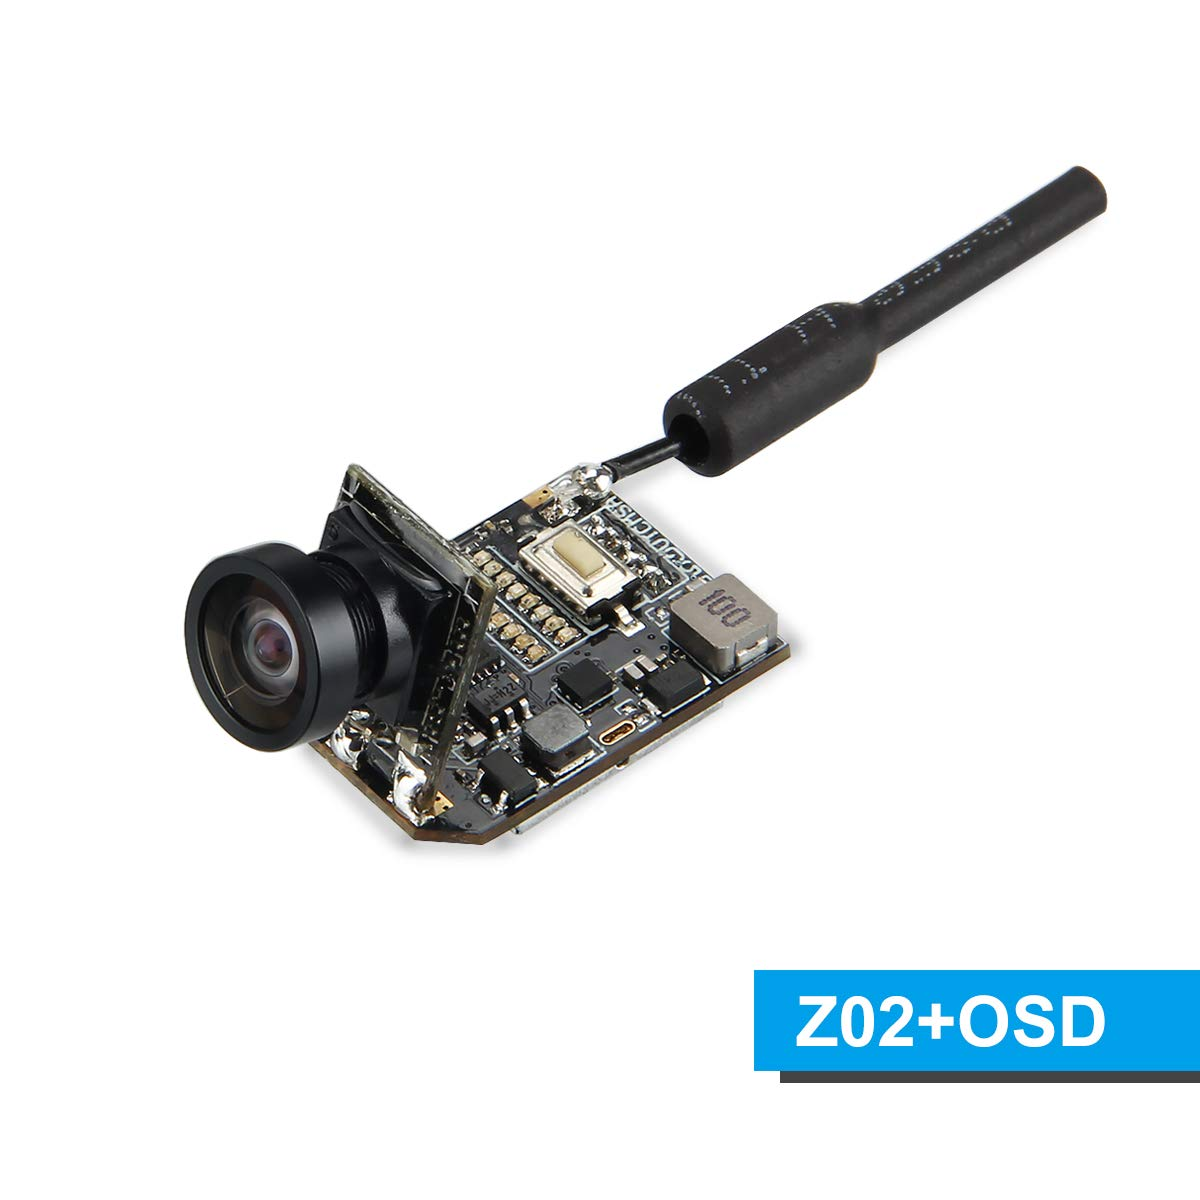 BETAFPV Z02 FPV Camera 480TVL CMOS OSD Switchable 25mW 200mW Transmitter SmartAudio Tiny Whoop Blade Inductrix Racing Drone by BETAFPV